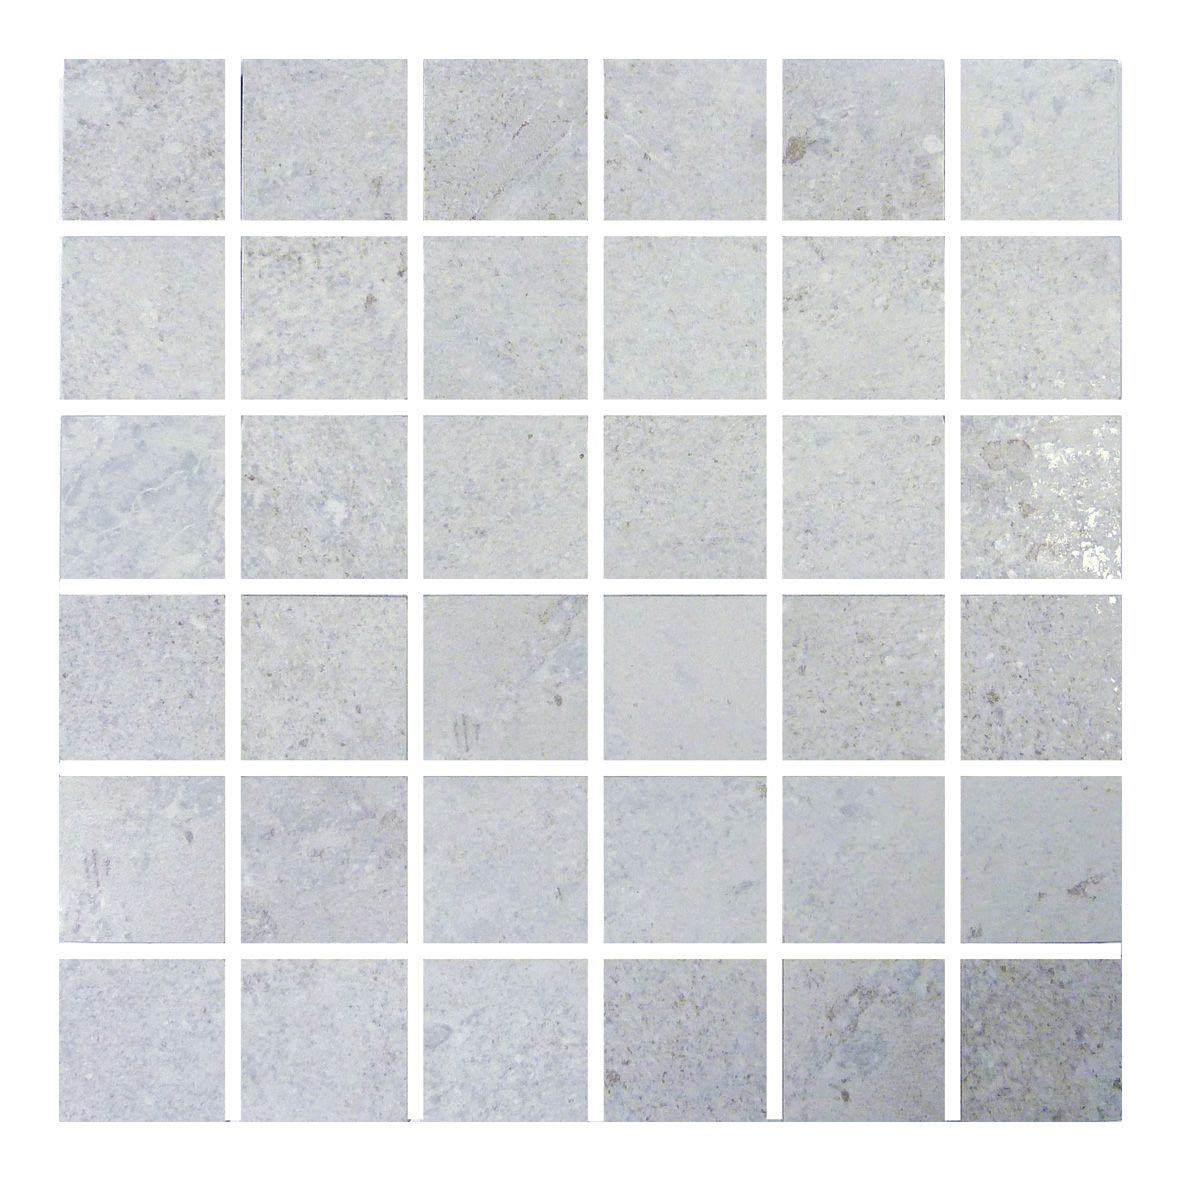 Grey Mosaic Bathroom Floor Tiles : Gemini hillock light grey mosaic bathroom kitchen